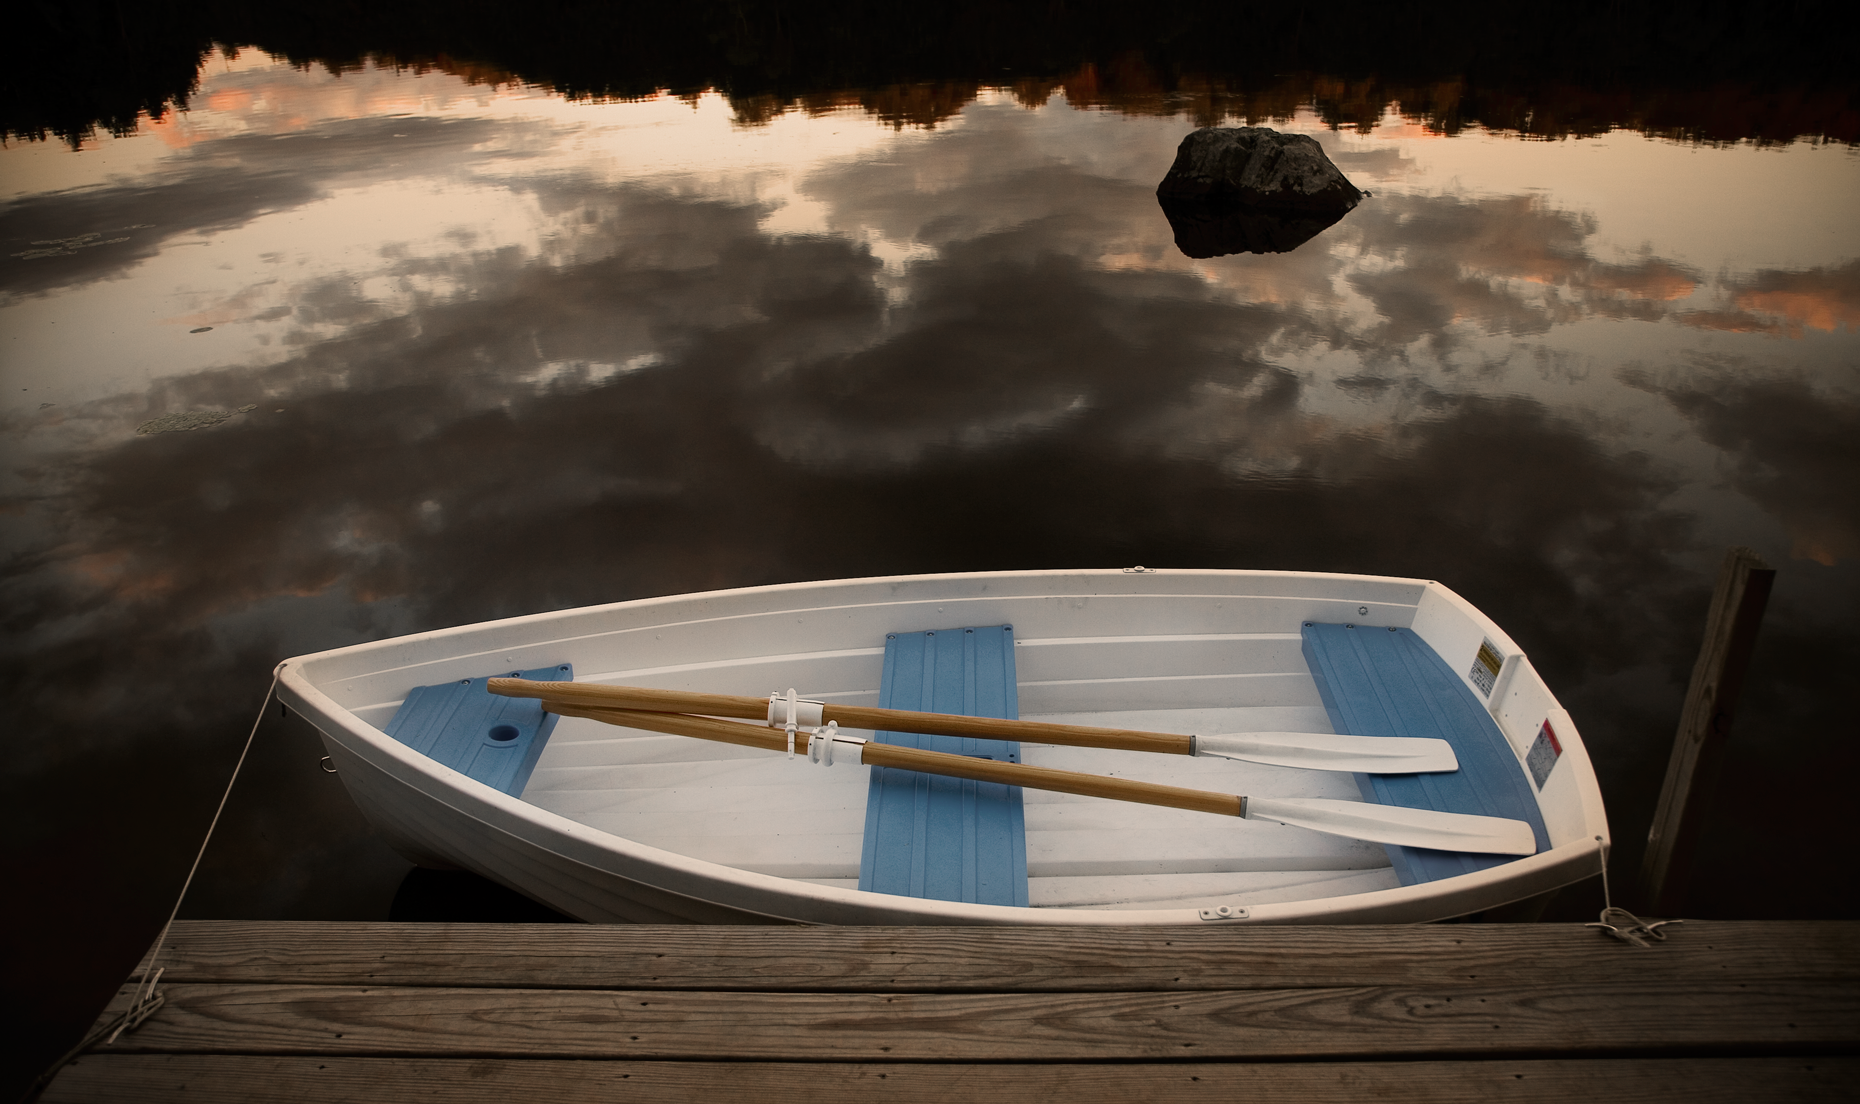 boat-reflection-lake